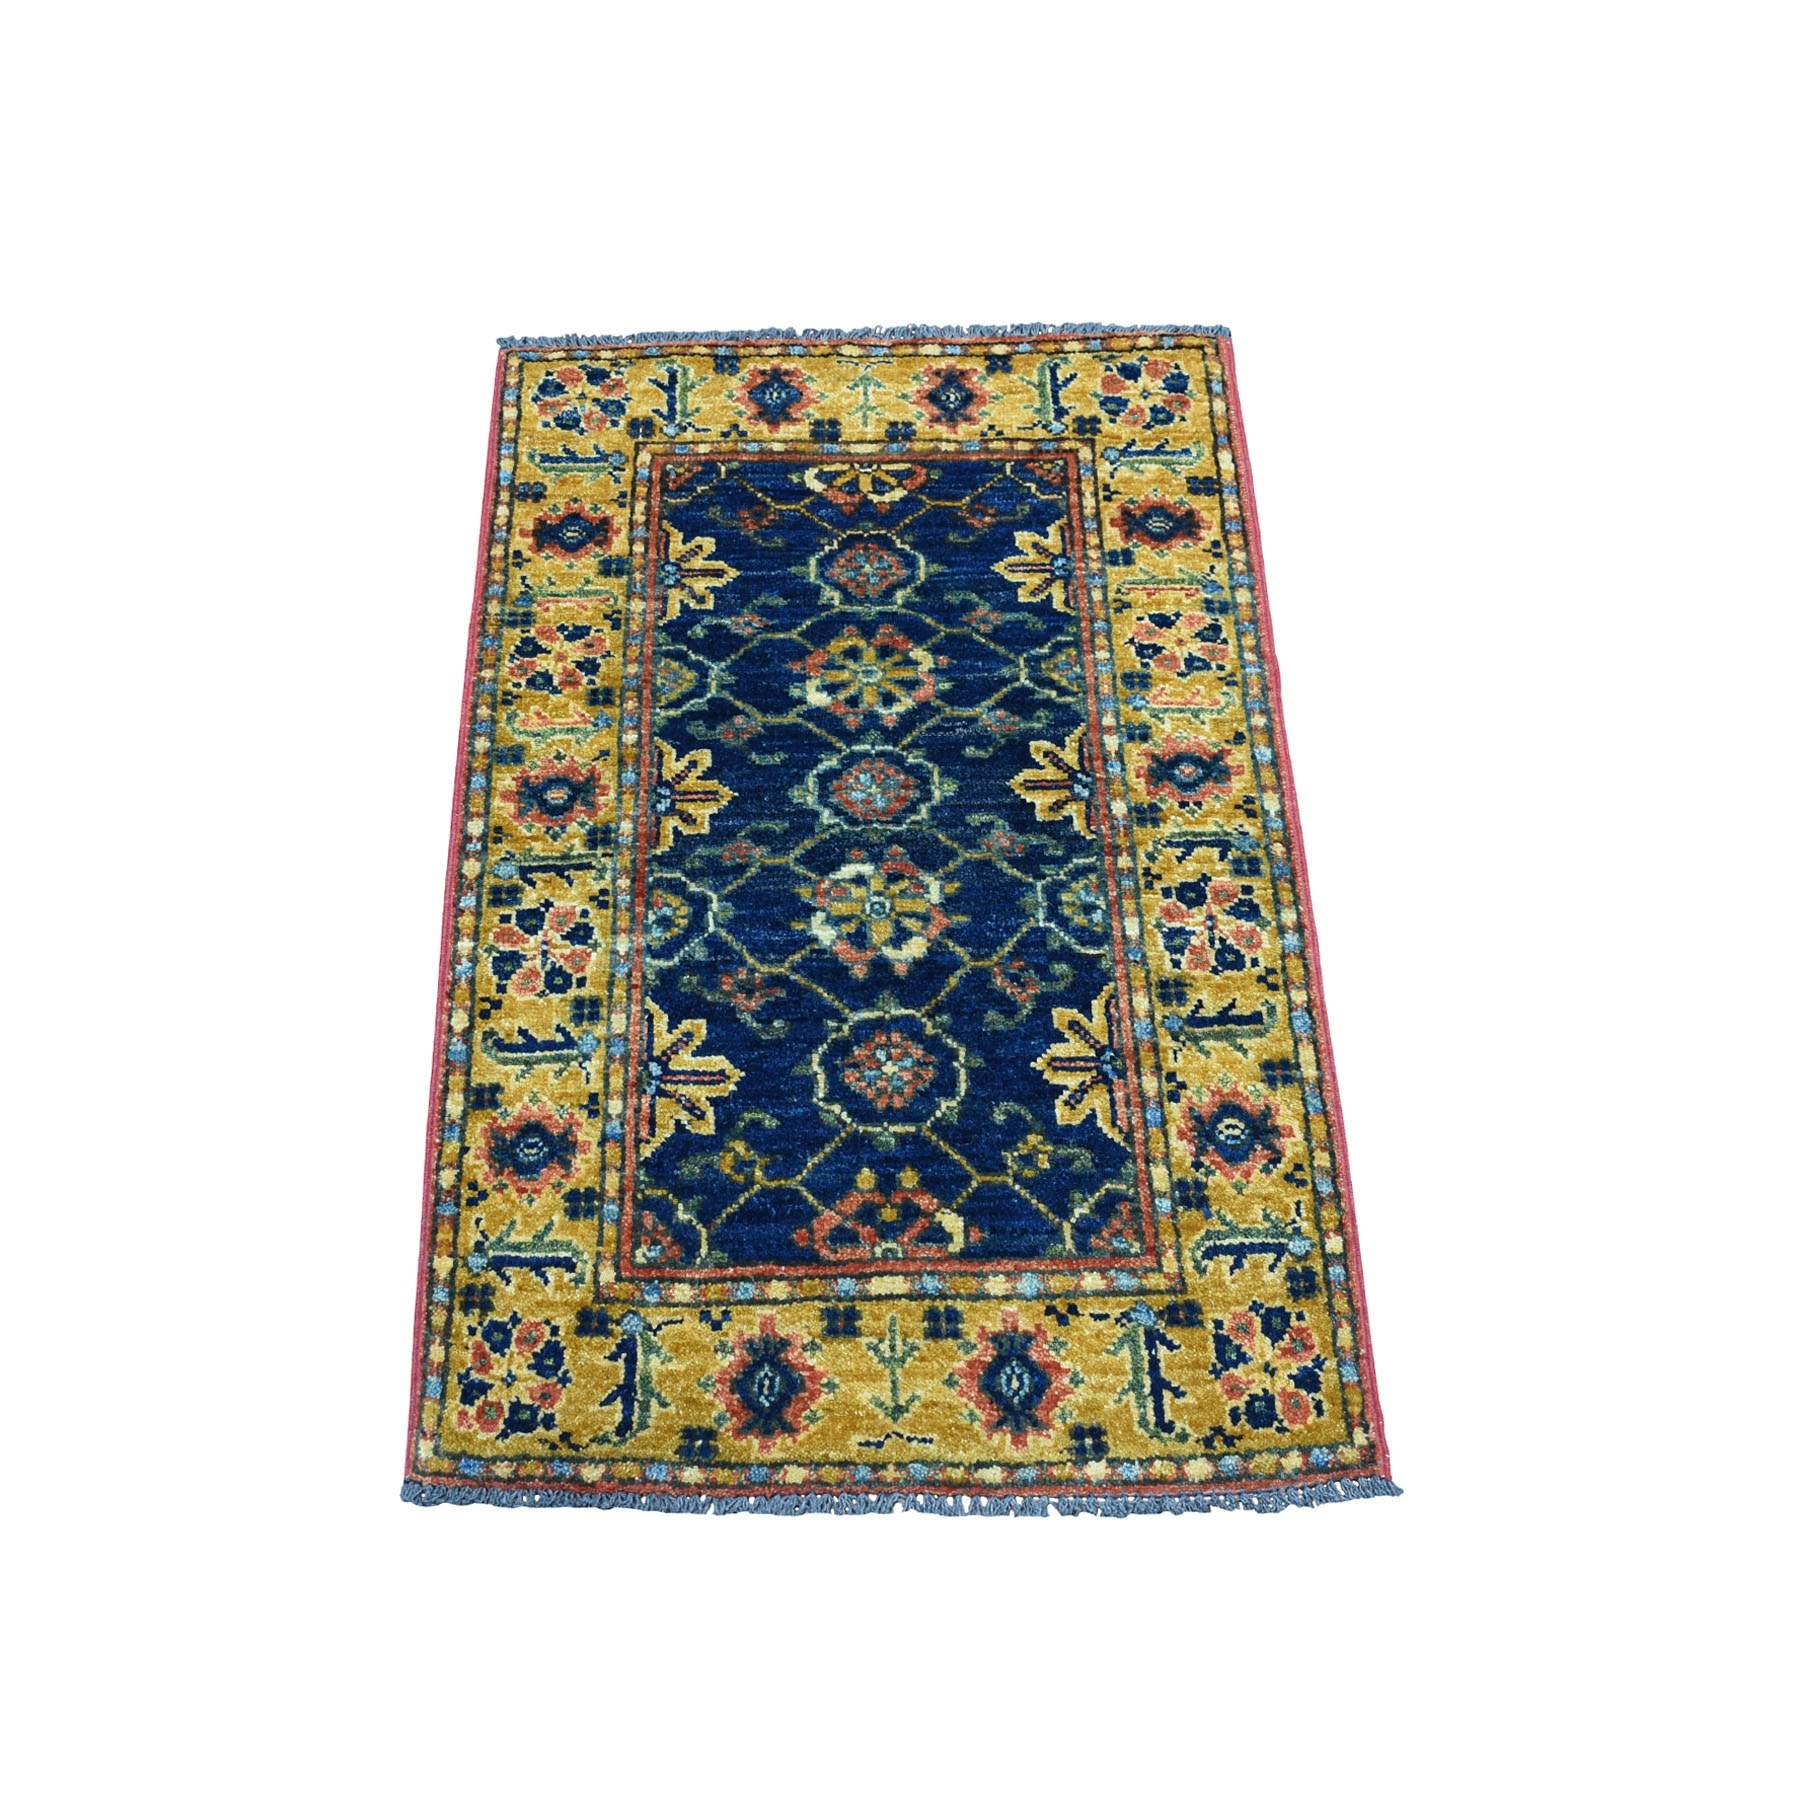 2'X3' Blue Afghan Ersari Tribal Design Hand Knotted Pure Wool Oriental Rug moaecb7a